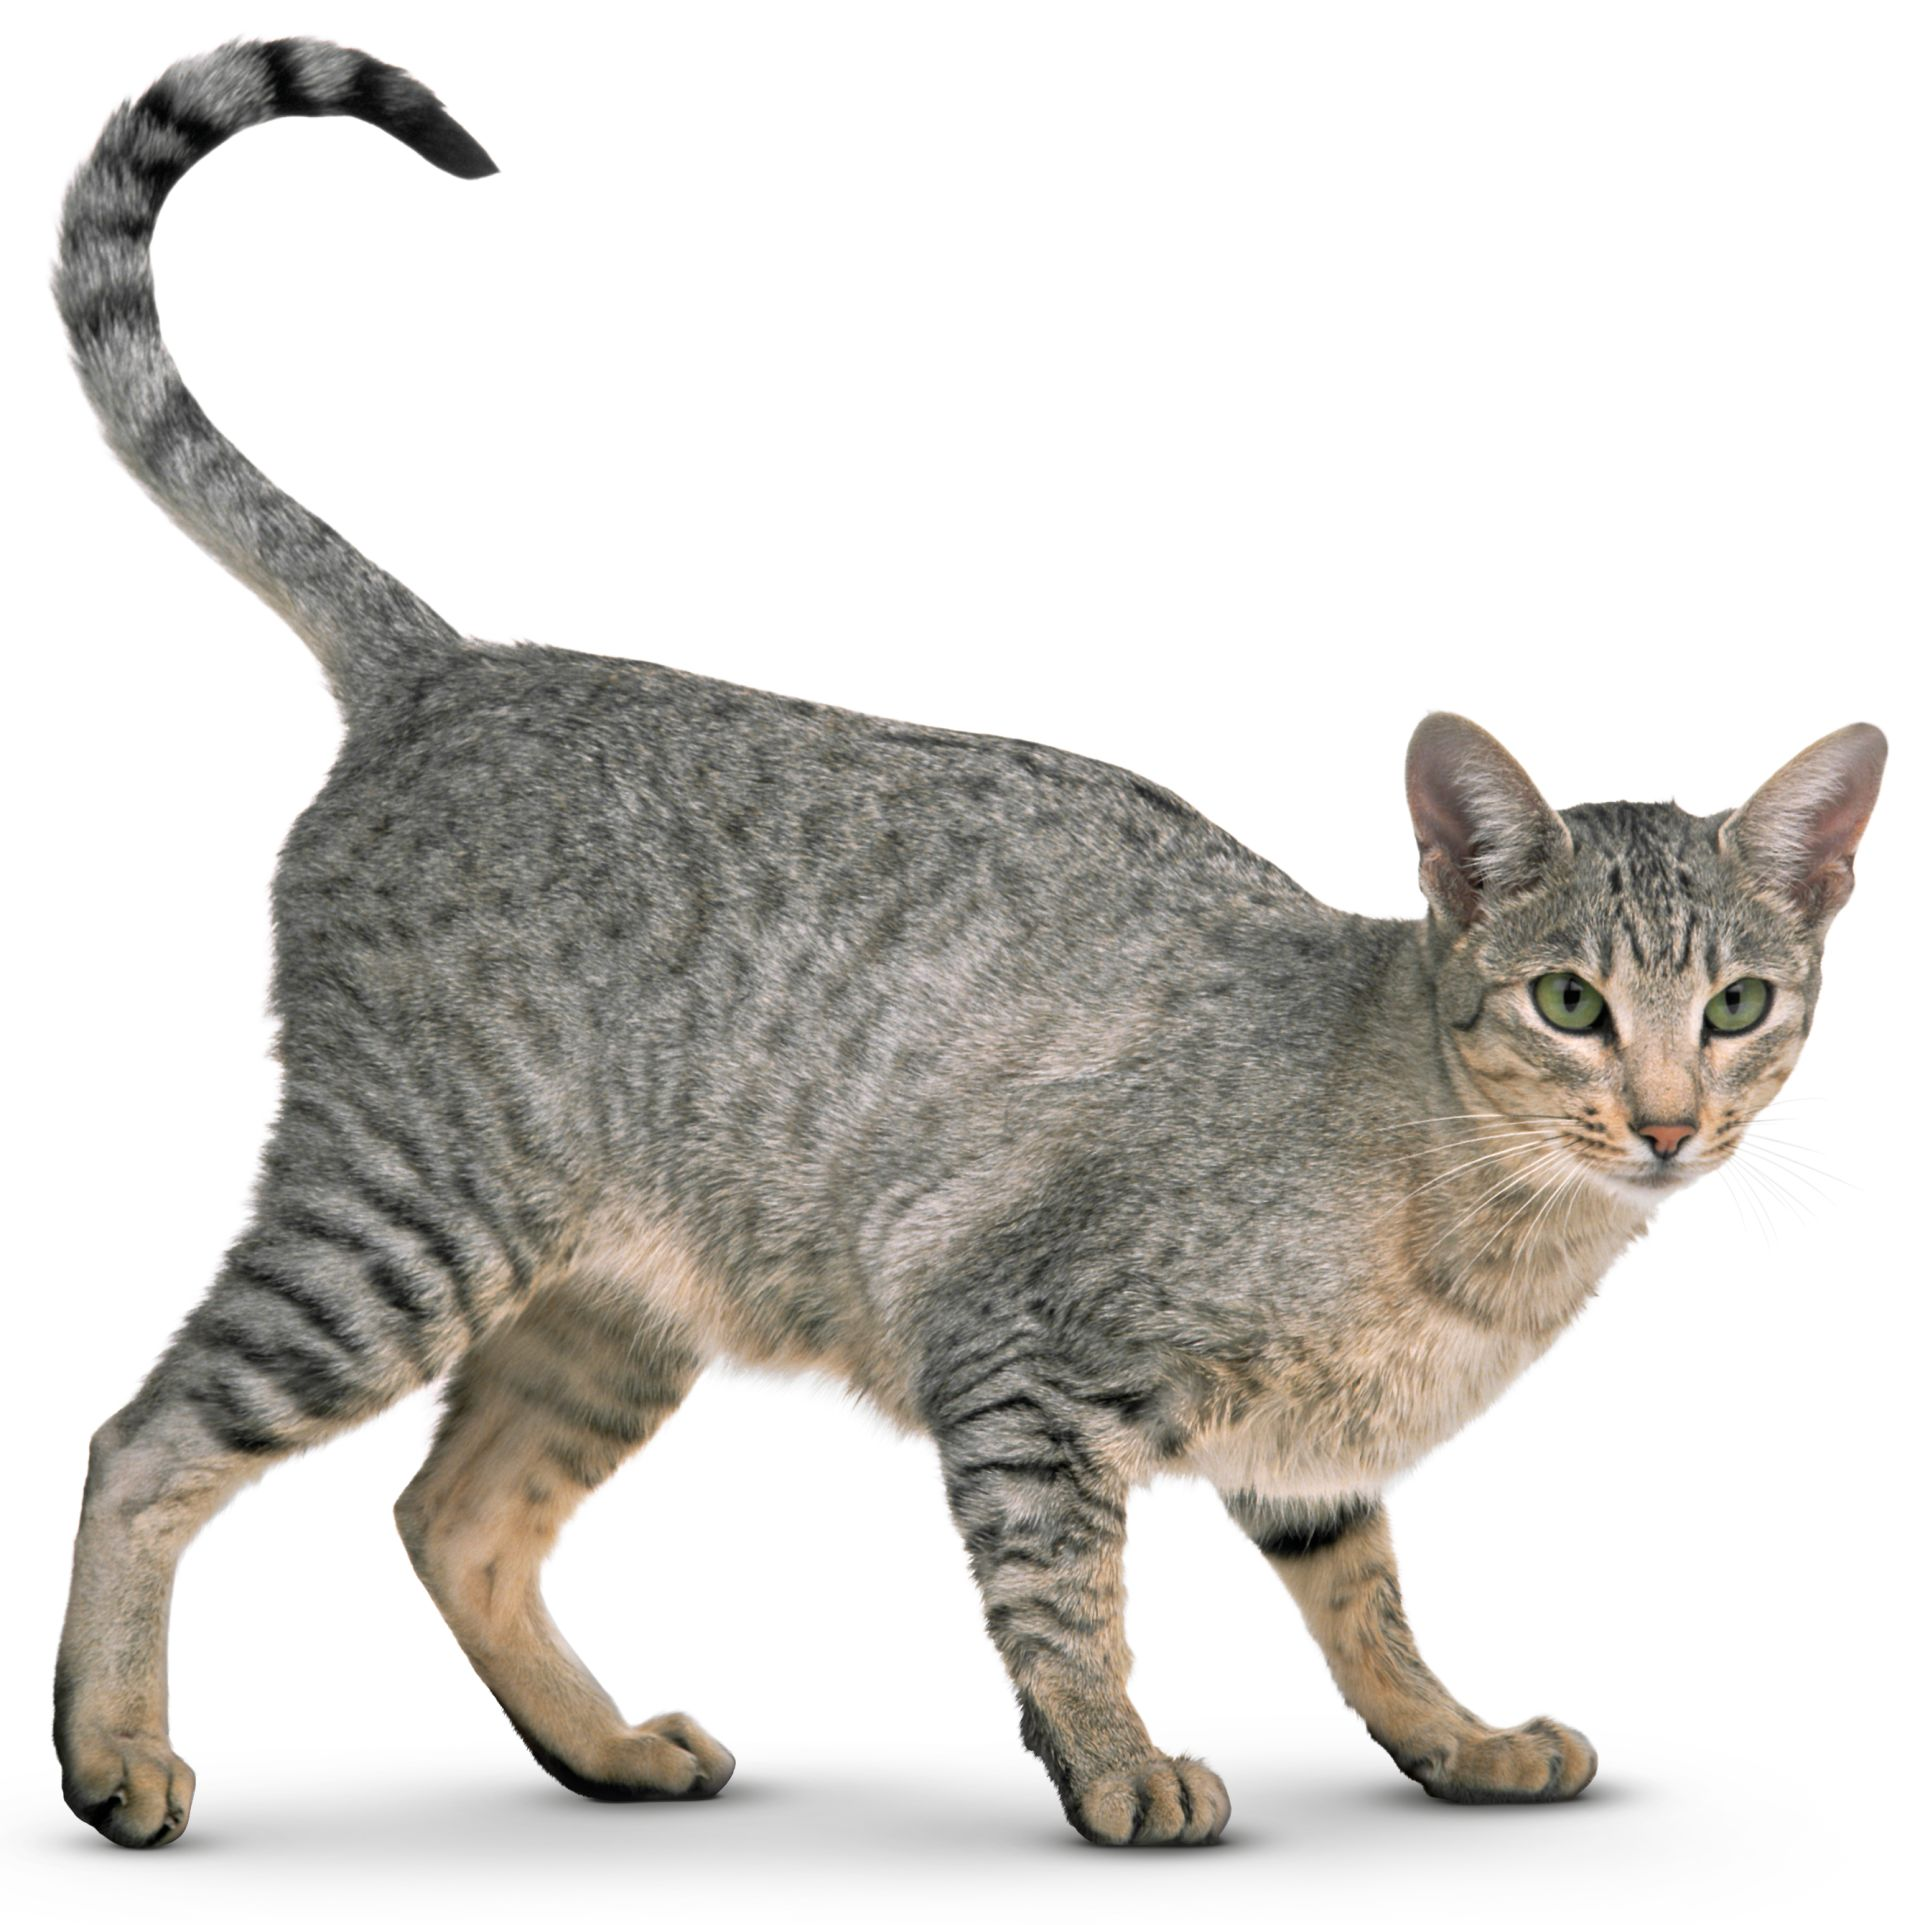 Cat Facts for Kids What is a Cat